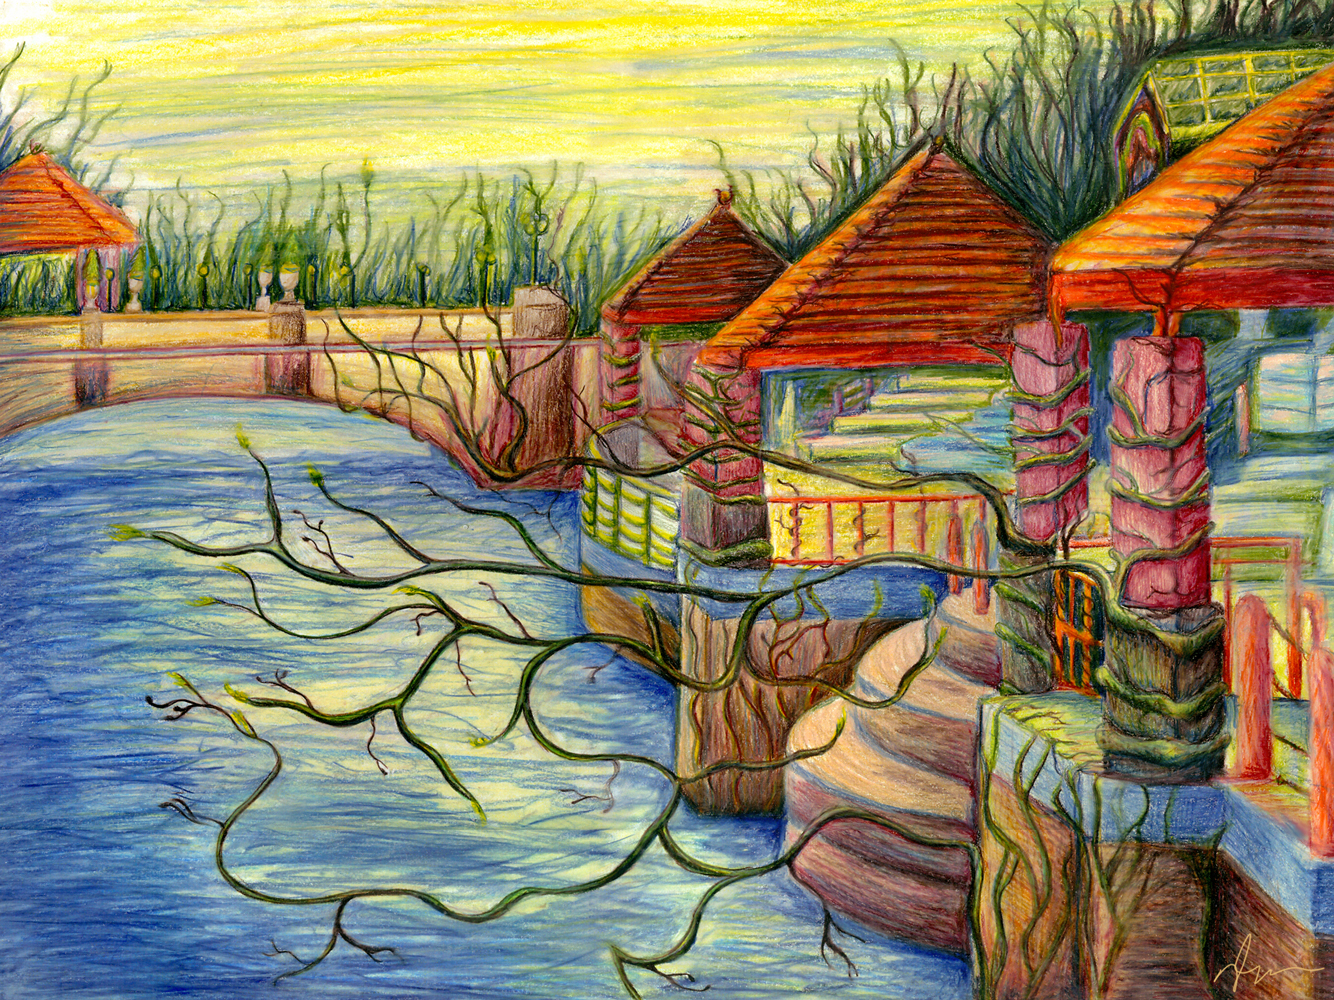 Drawn scenic colored pencil Cleary Nicole Cleary pencil Nicole